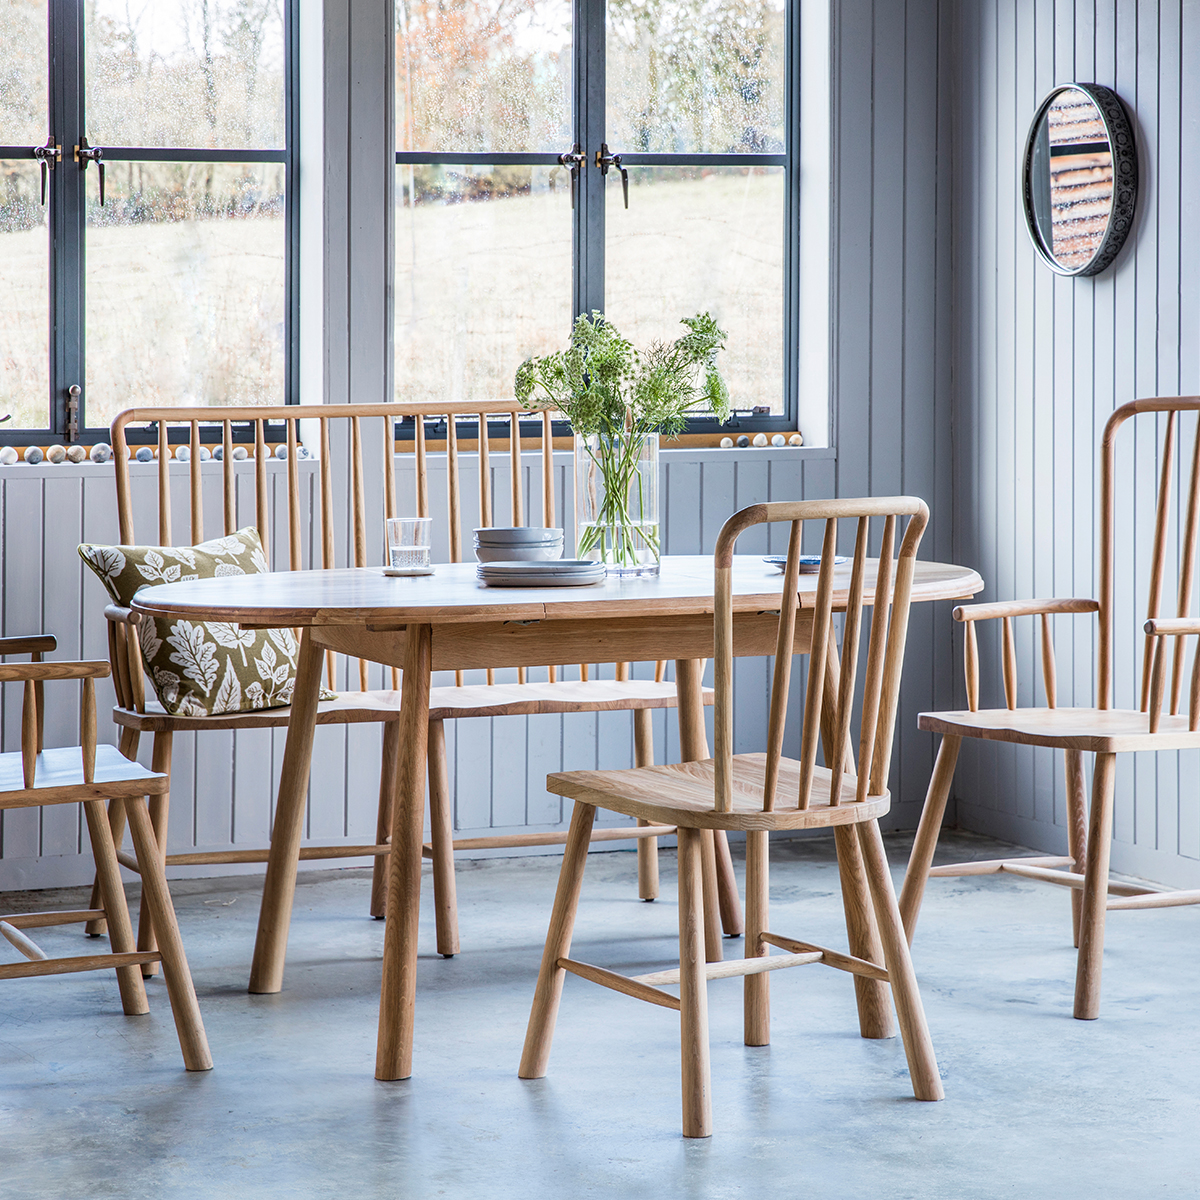 Dining Chair Trends For 2016: Design Trends From Gallery Home Australia